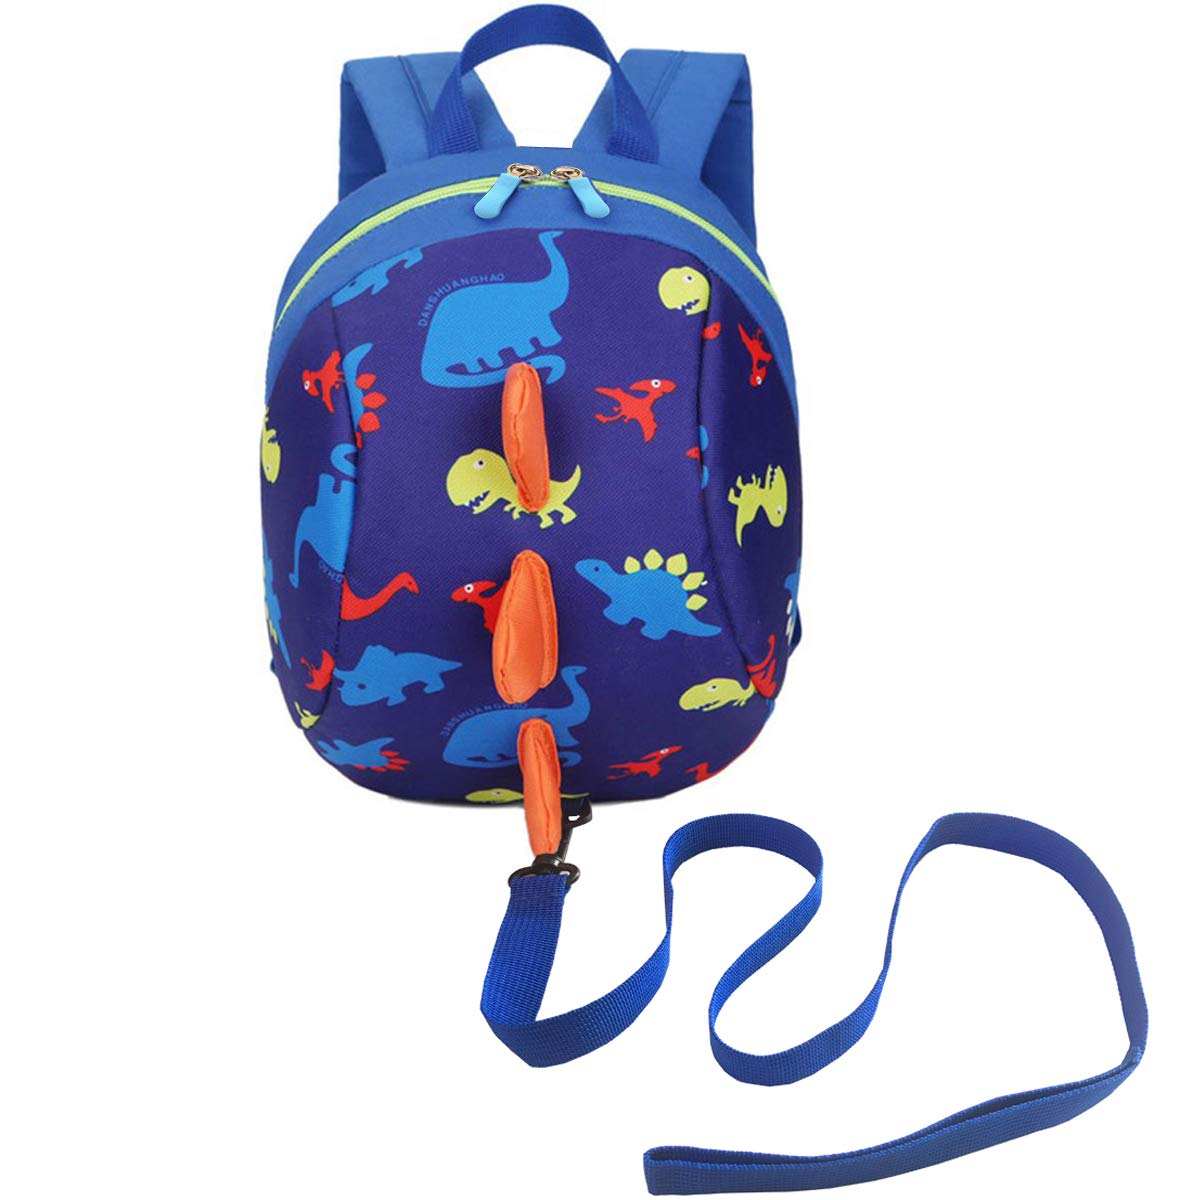 DB Dinosaur Toddler Mini Backpack with Leash, Children Kids Baby Harness Bookbag